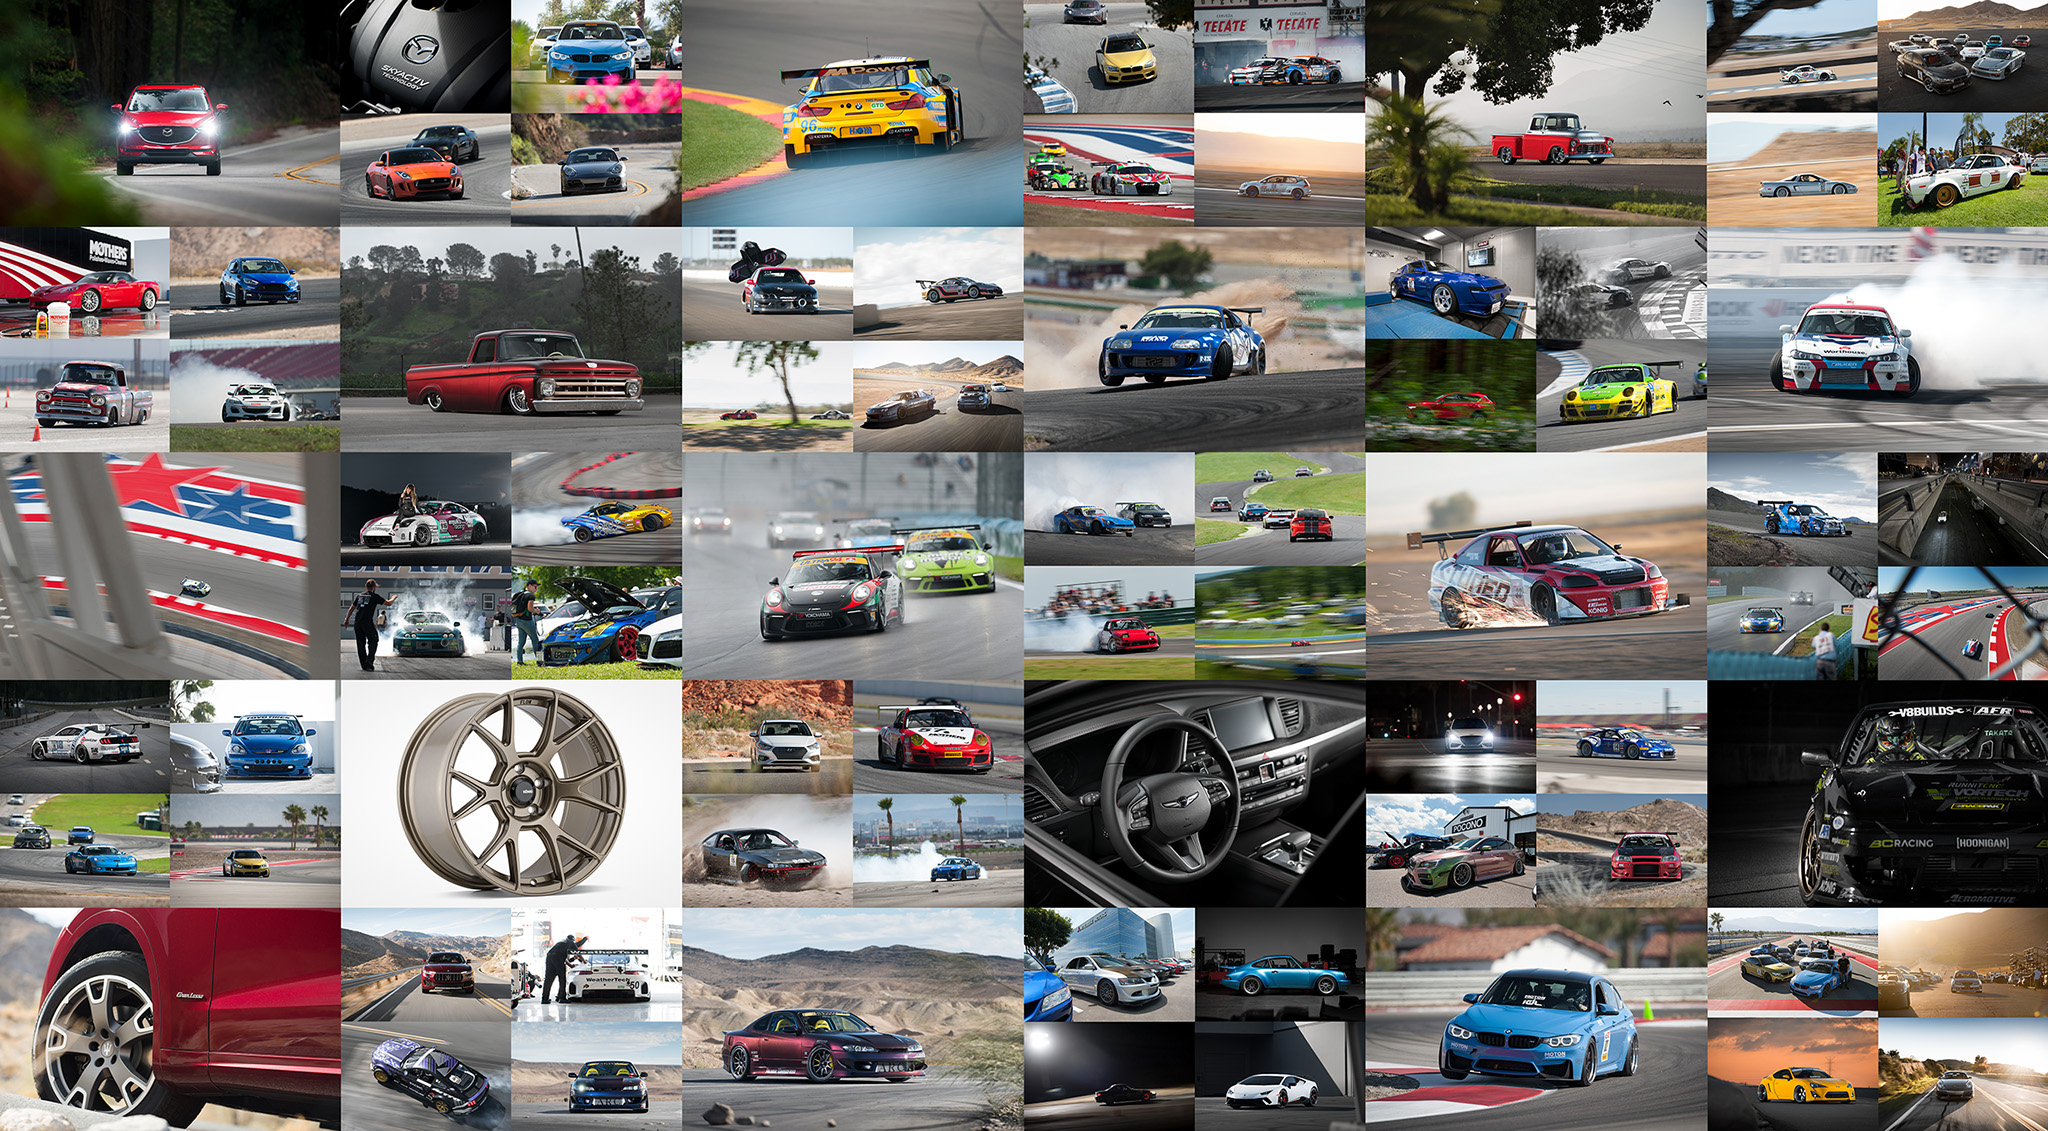 Luke Munnell automotive motorsports photography 2017 year in review collage